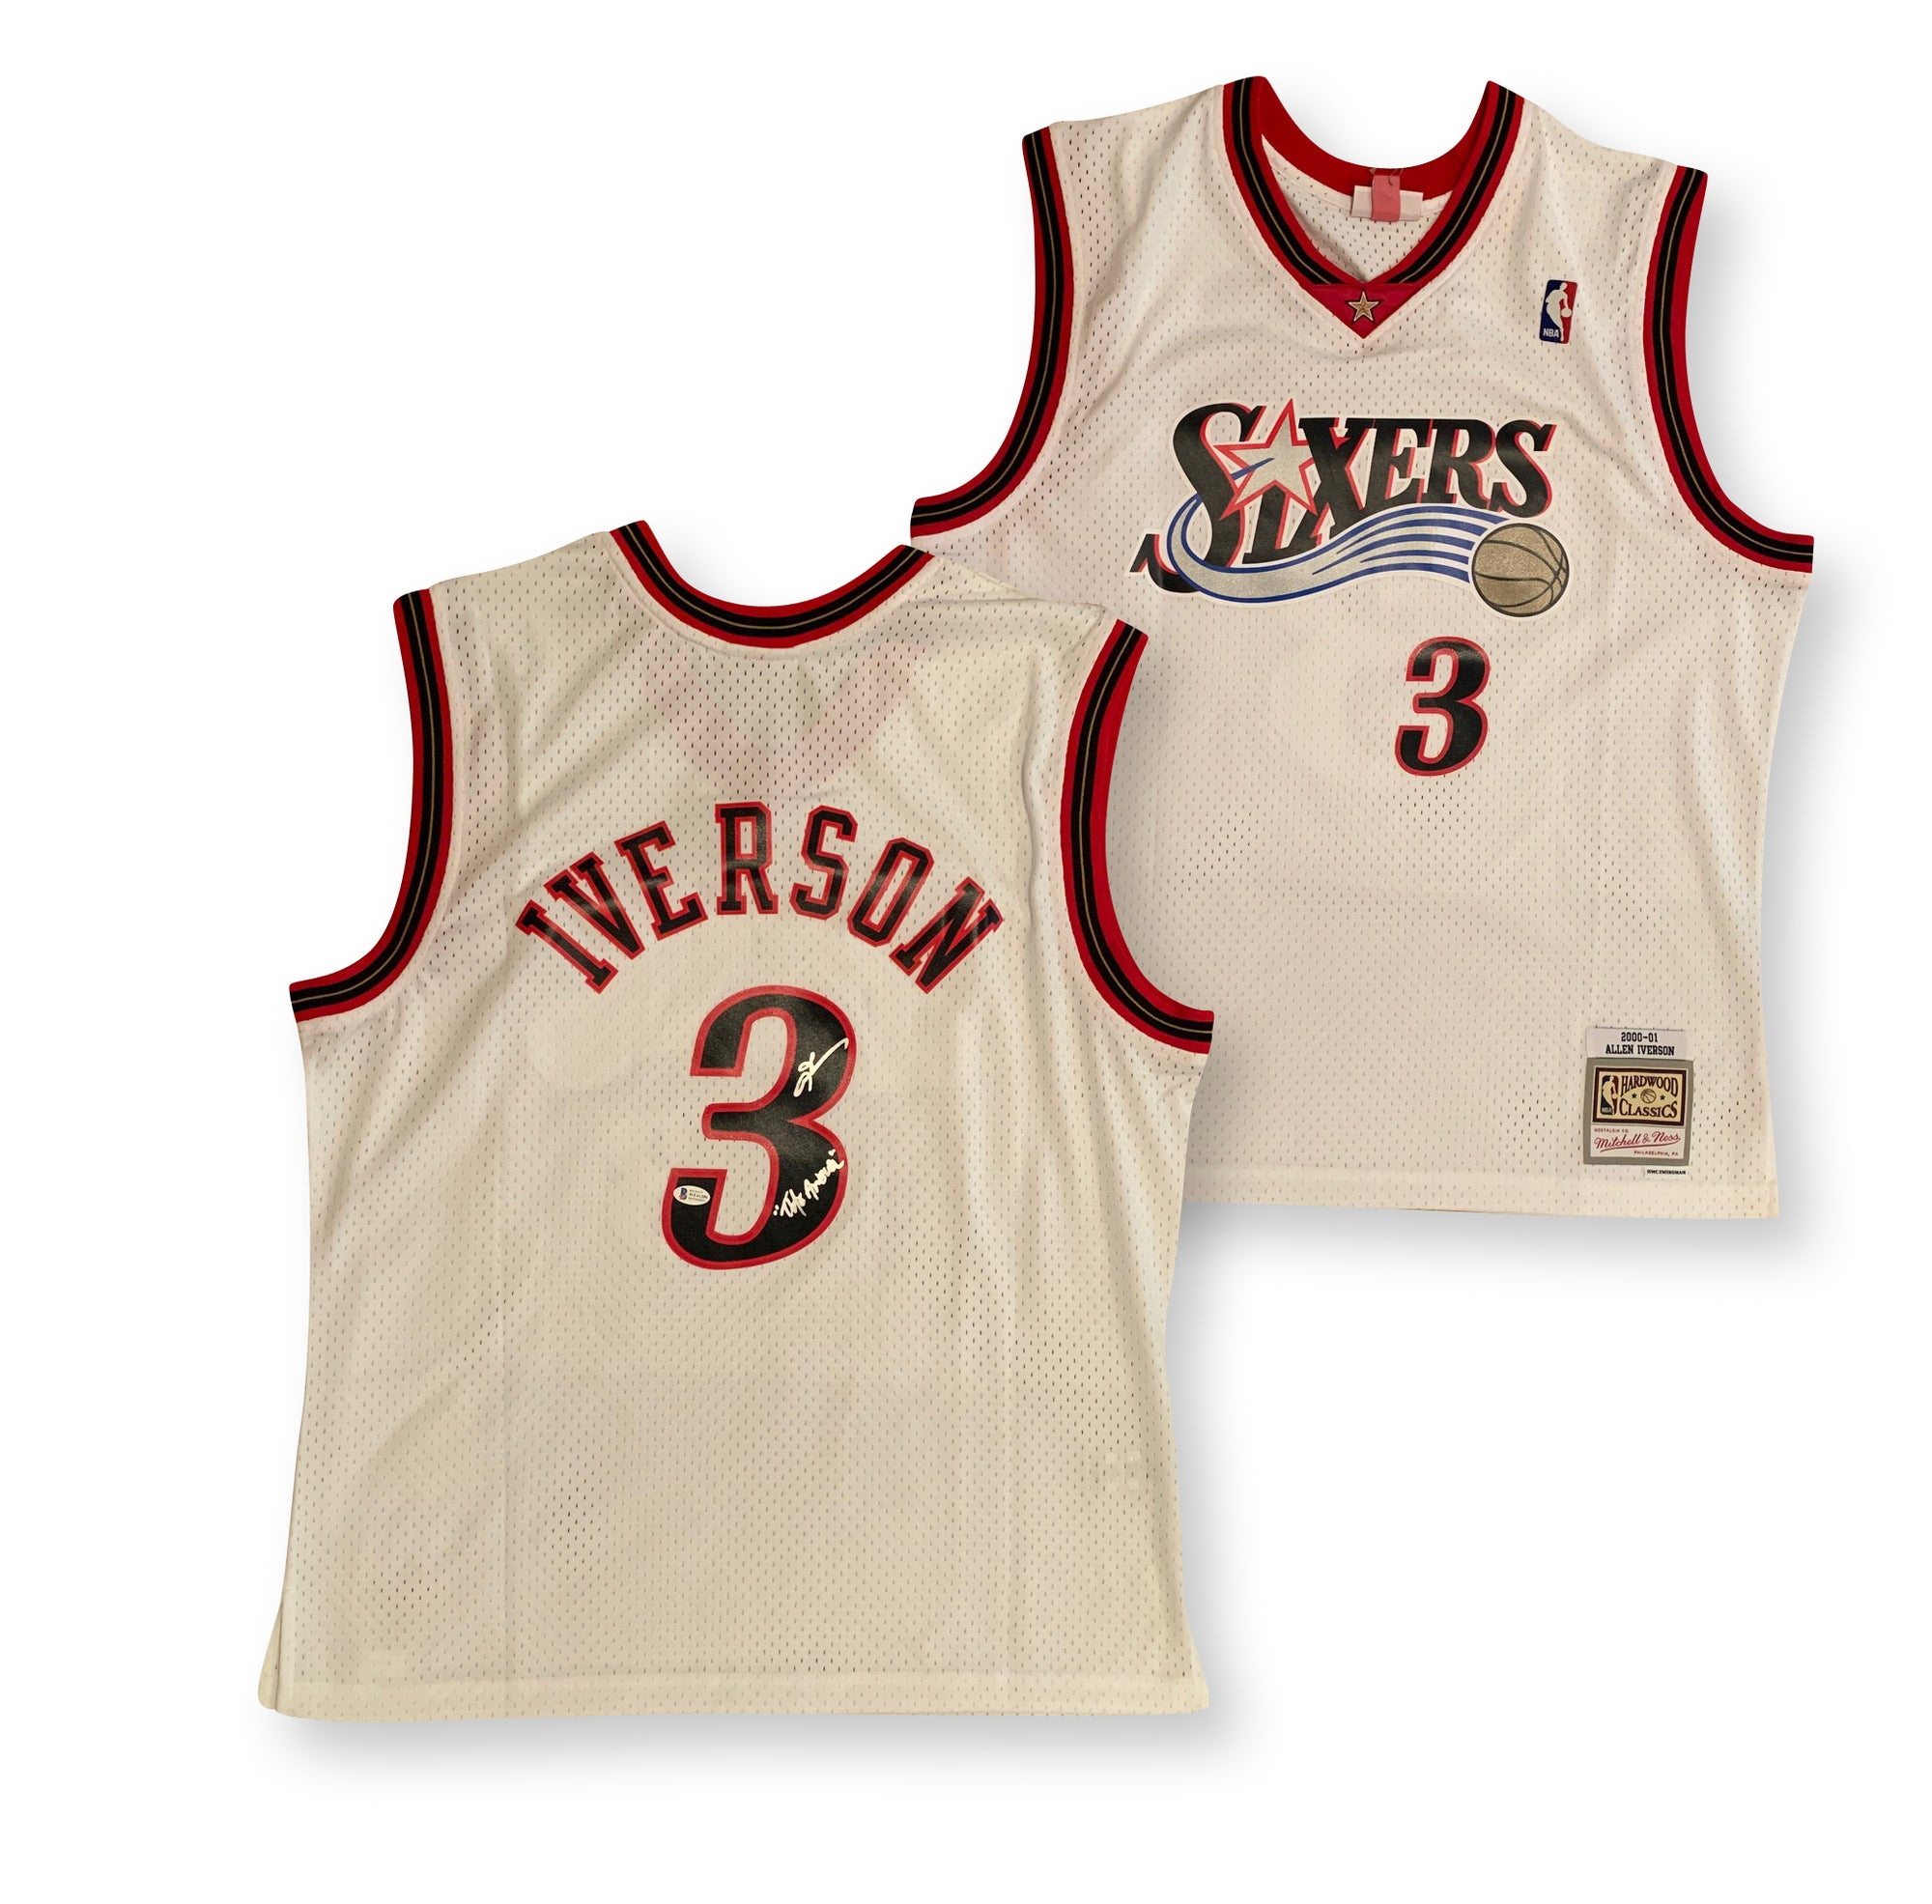 Allen Iverson Autographed Philadelphia 76ers Michell and Ness Swingman Signed Basketball Jersey THE ANSWER Beckett BAS COA-Powers Sports Memorabilia